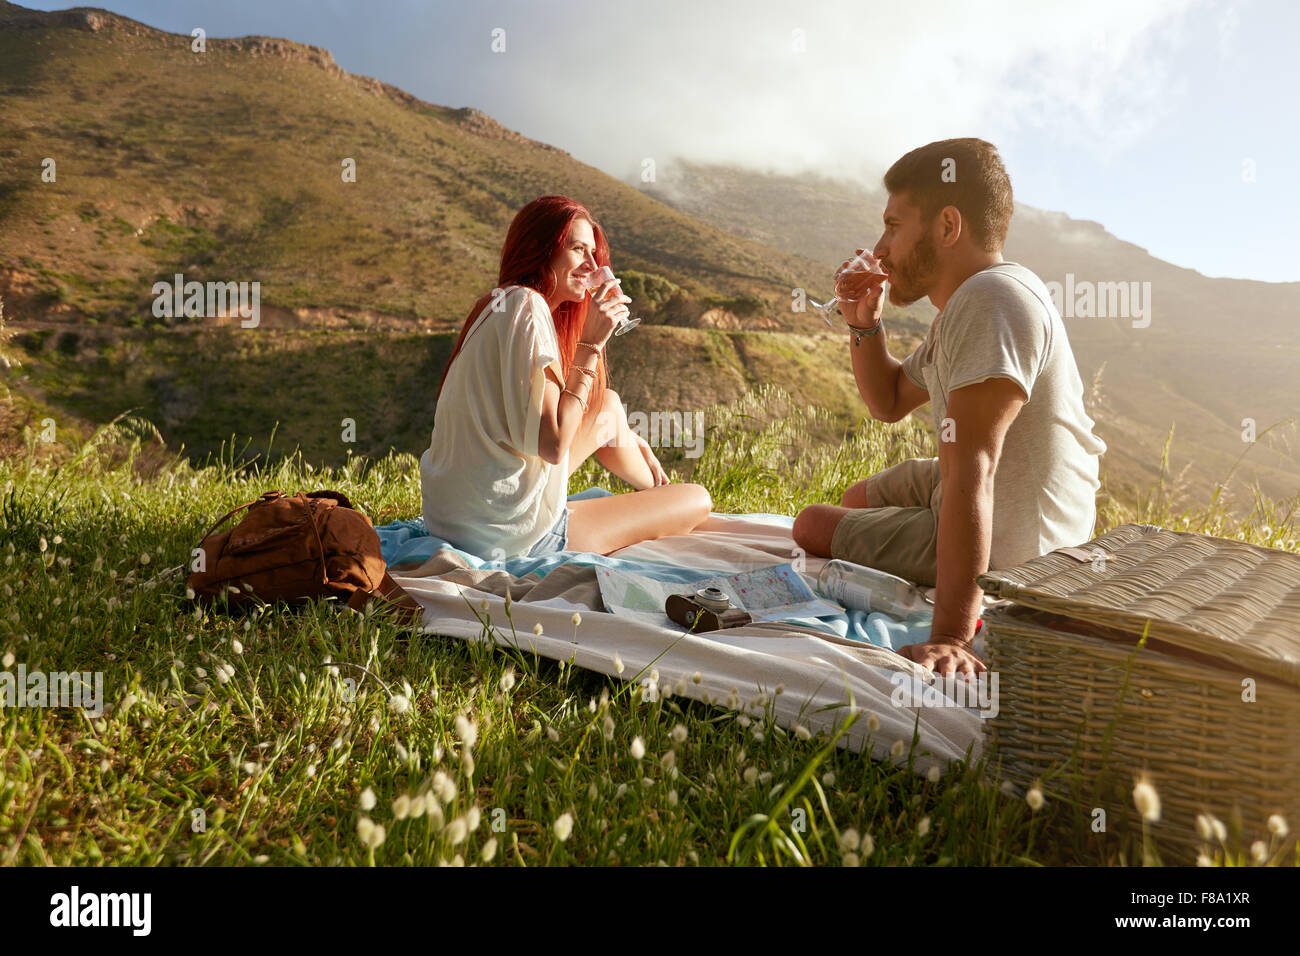 Outdoor shot of a young couple drinking wine. Relaxed man and woman on summer vacation in countryside. - Stock Image